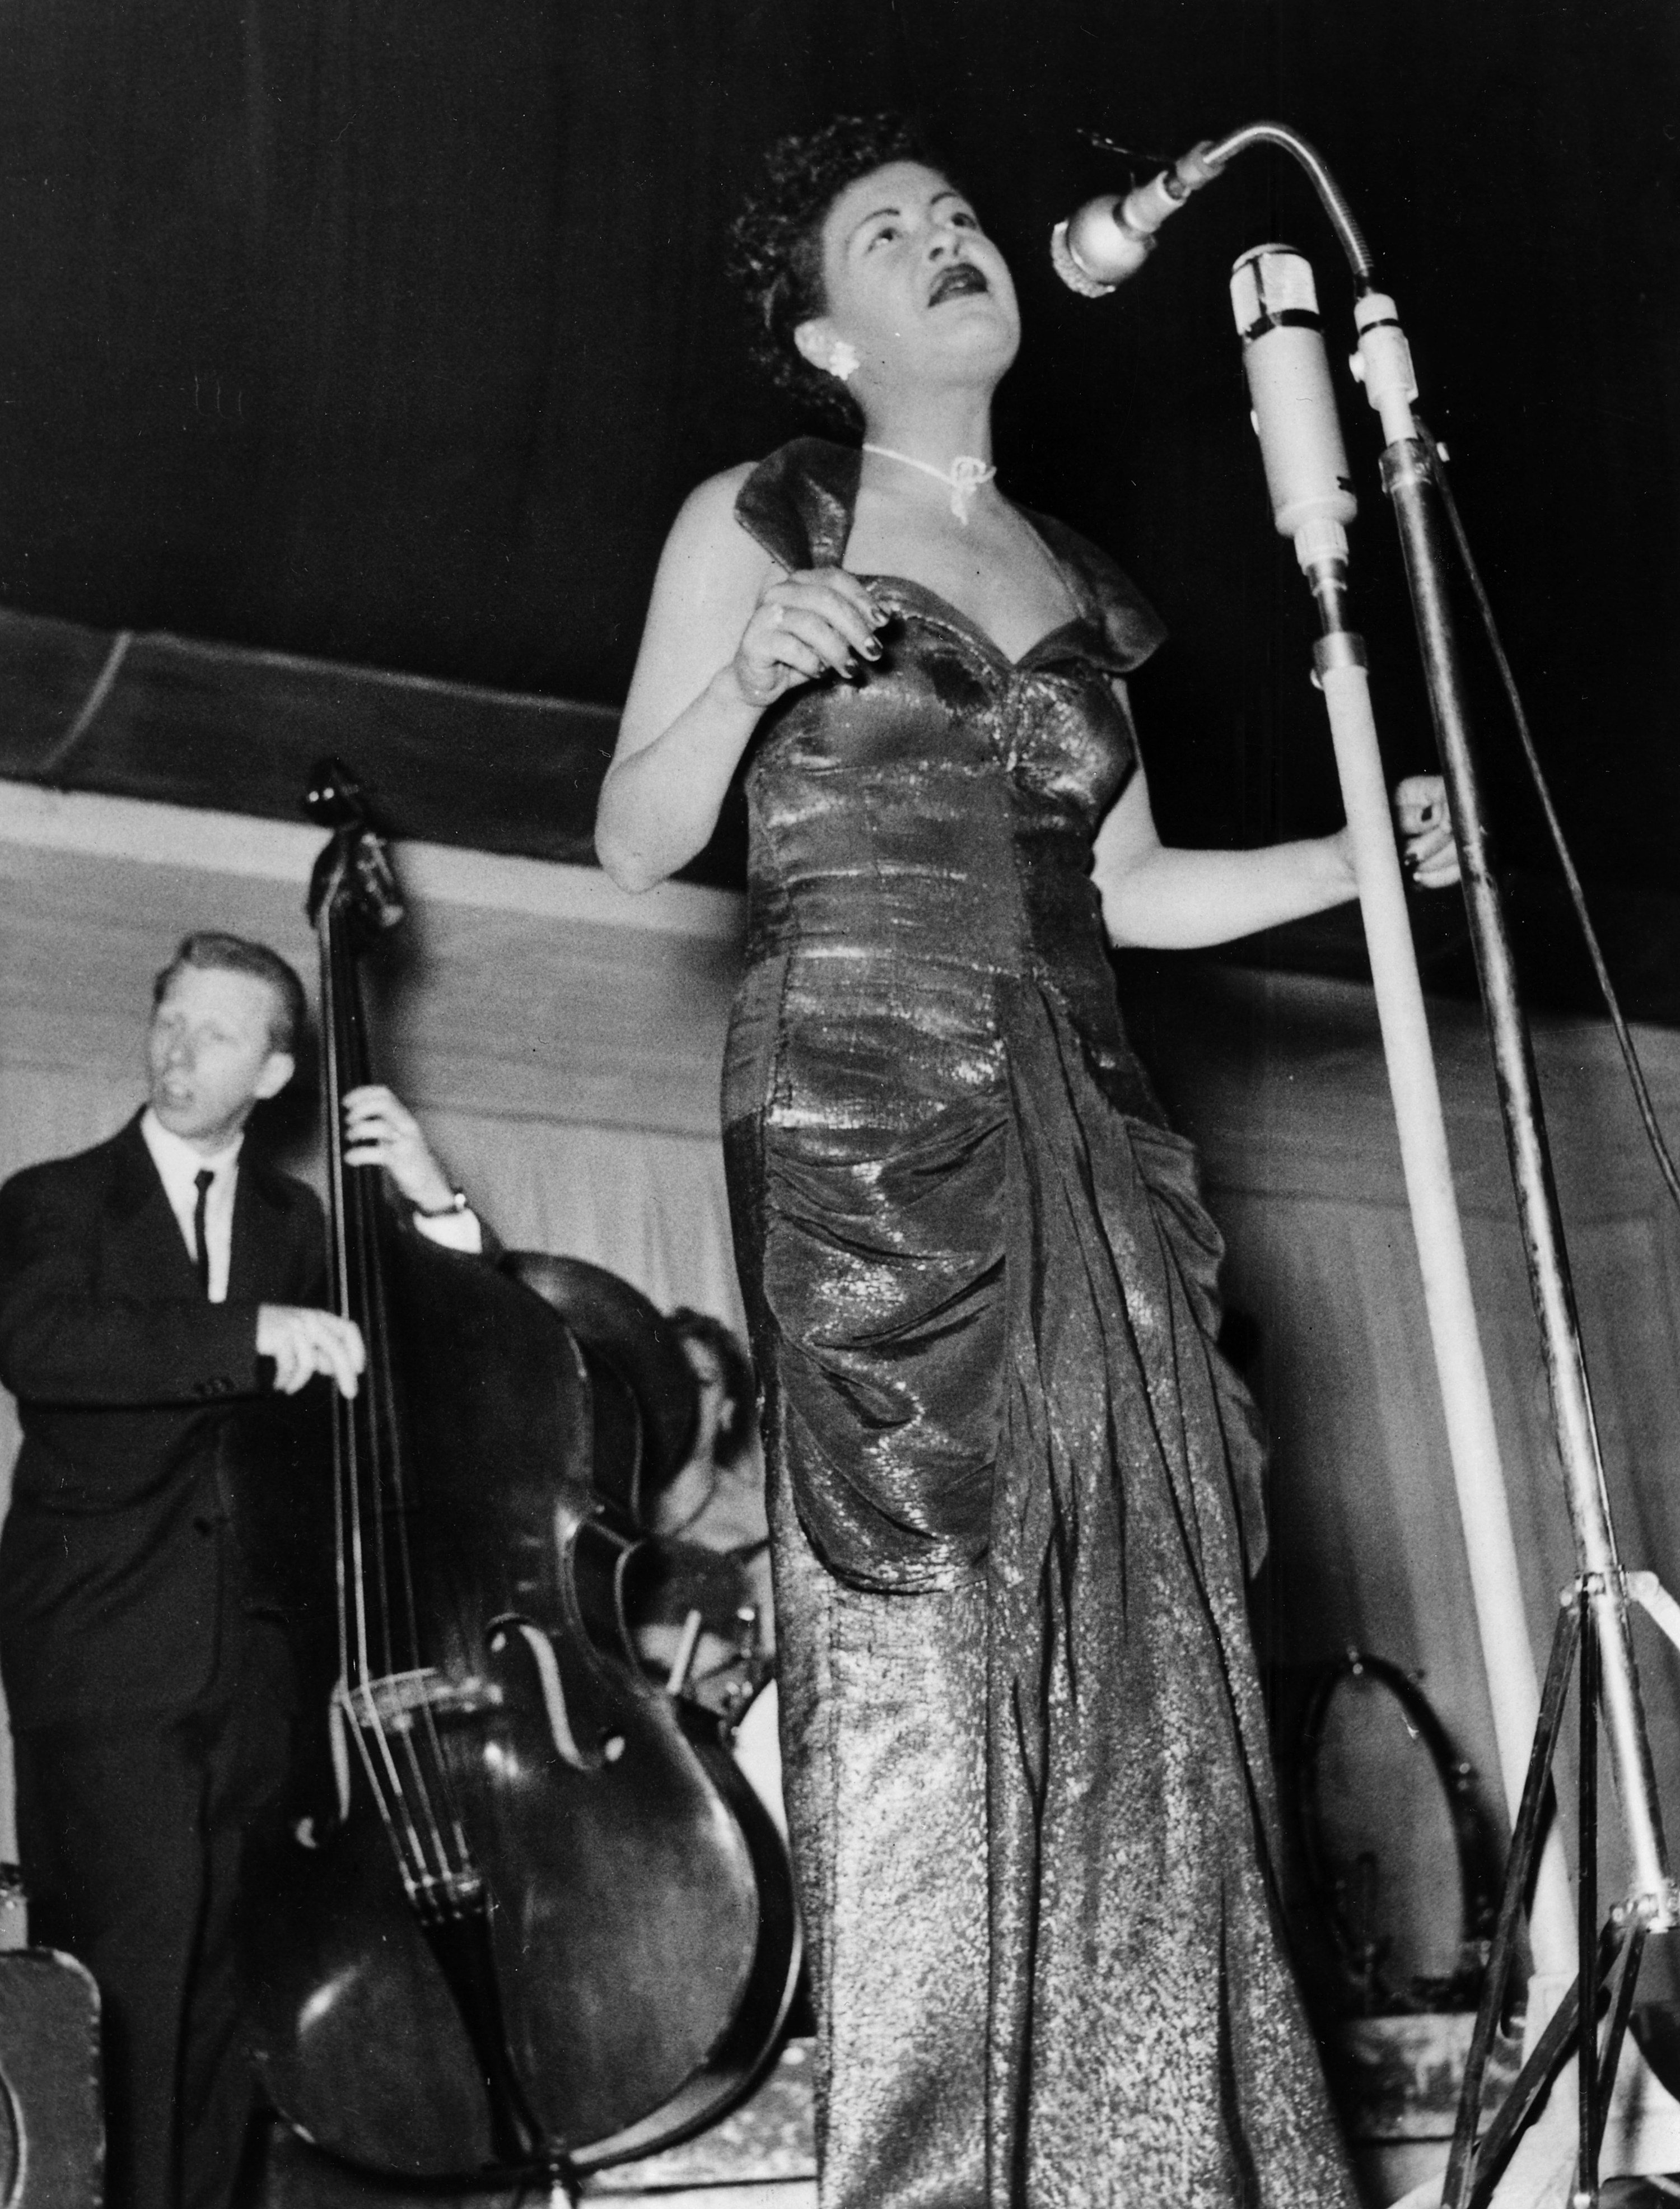 Billie Holiday giving a concert in the 1950s